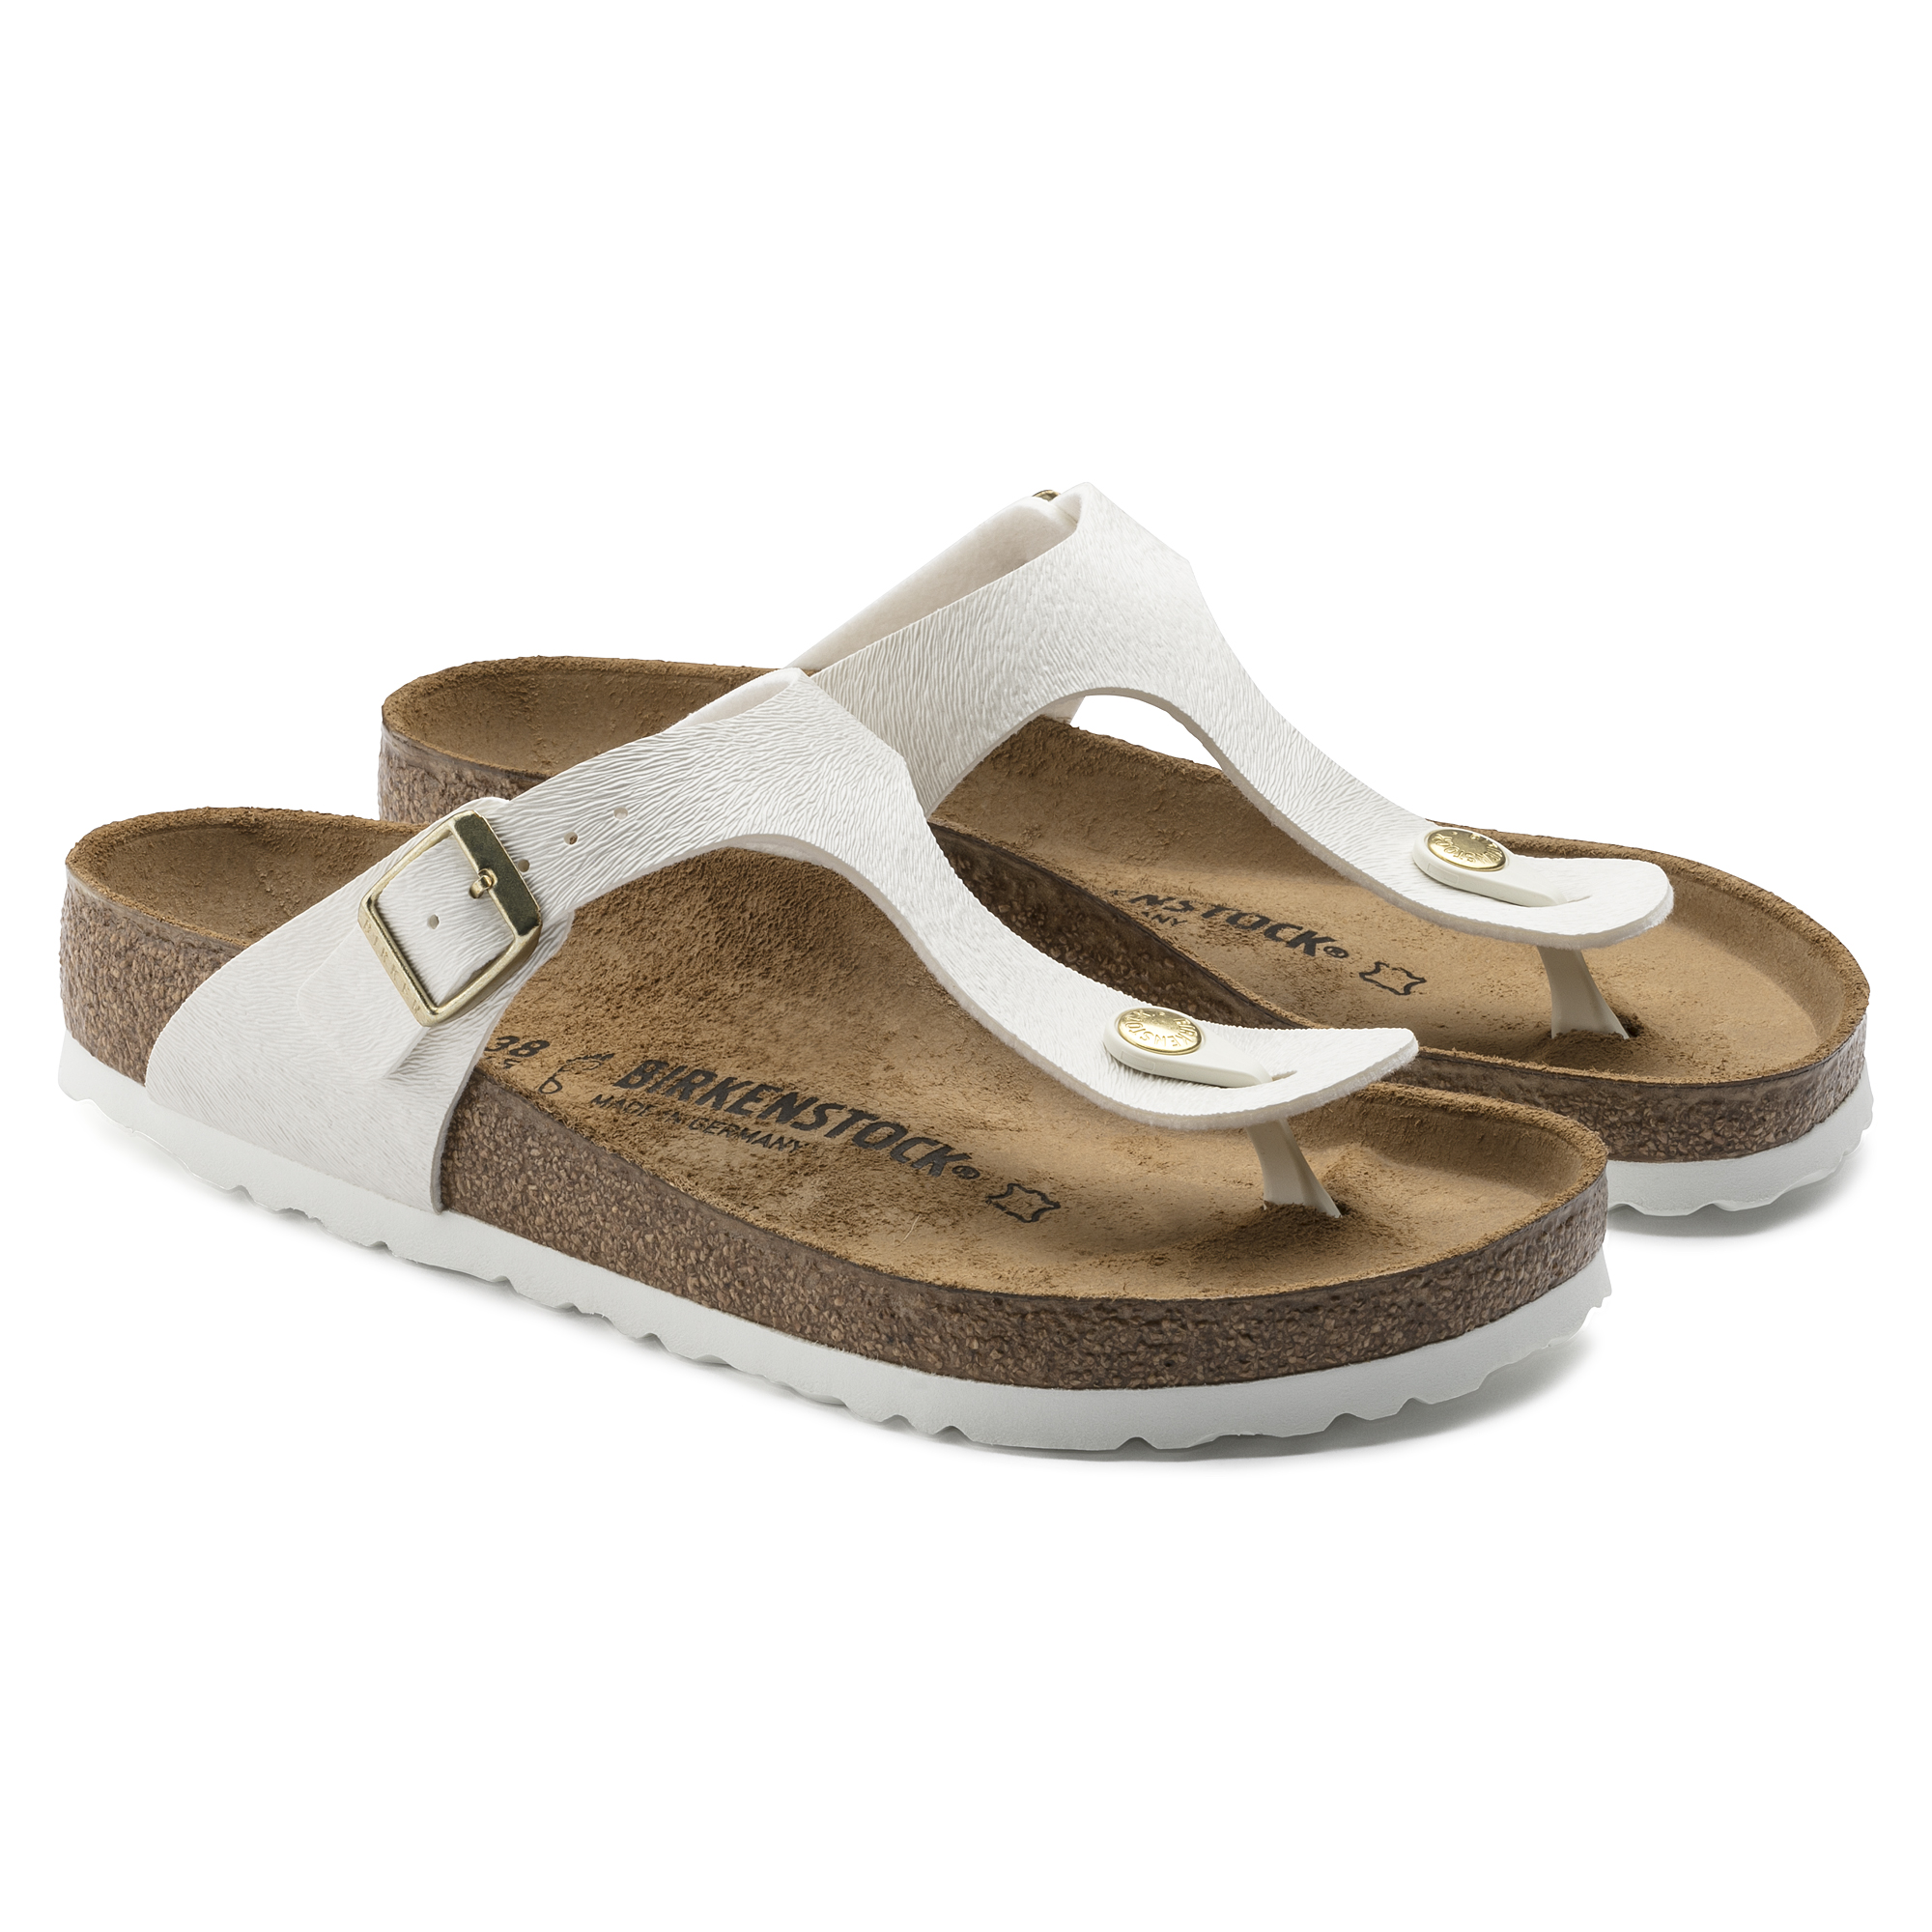 BIRKENSTOCK Damen Zehentrenner Gizeh Animal Fascination Offwhite 41